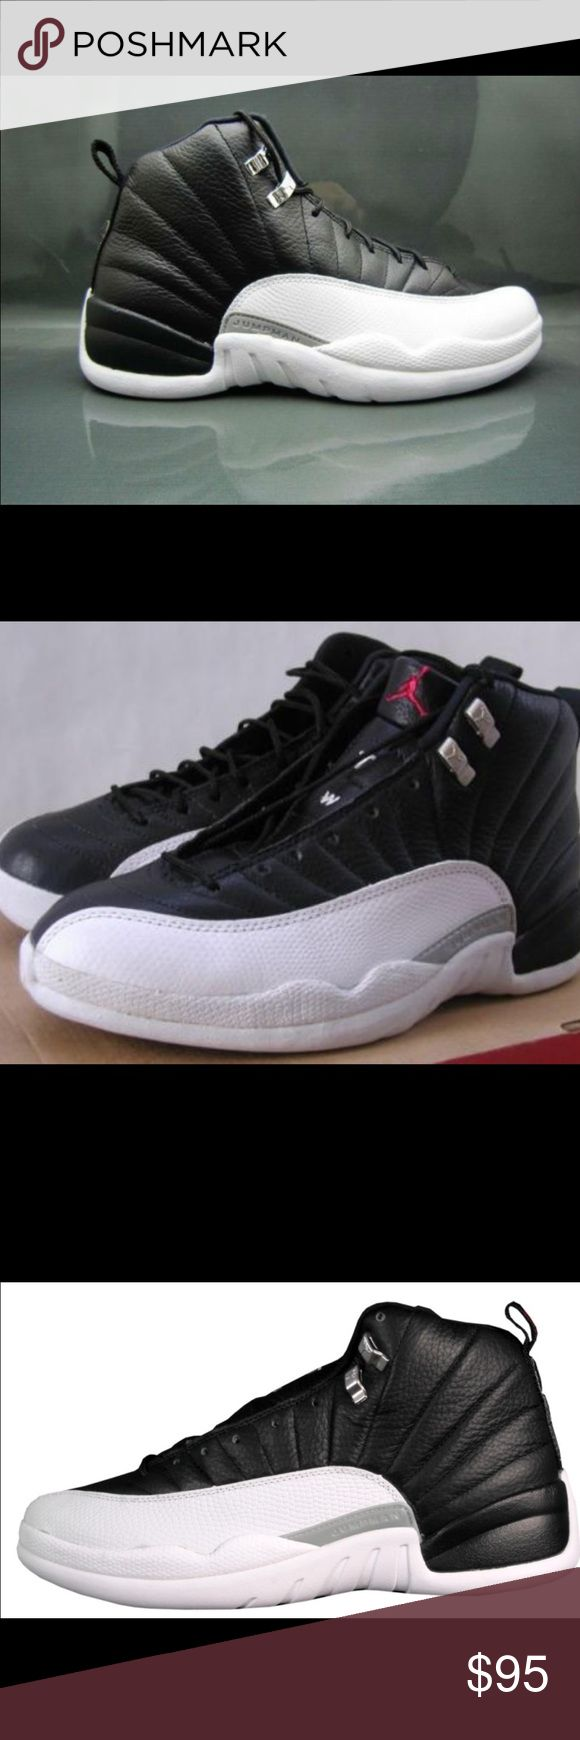 Jordan 12 Black and White Jordan 12's worn a couple times and in great condition. They are a big kids 7/ women's 8.5 Jordan Shoes Sneakers